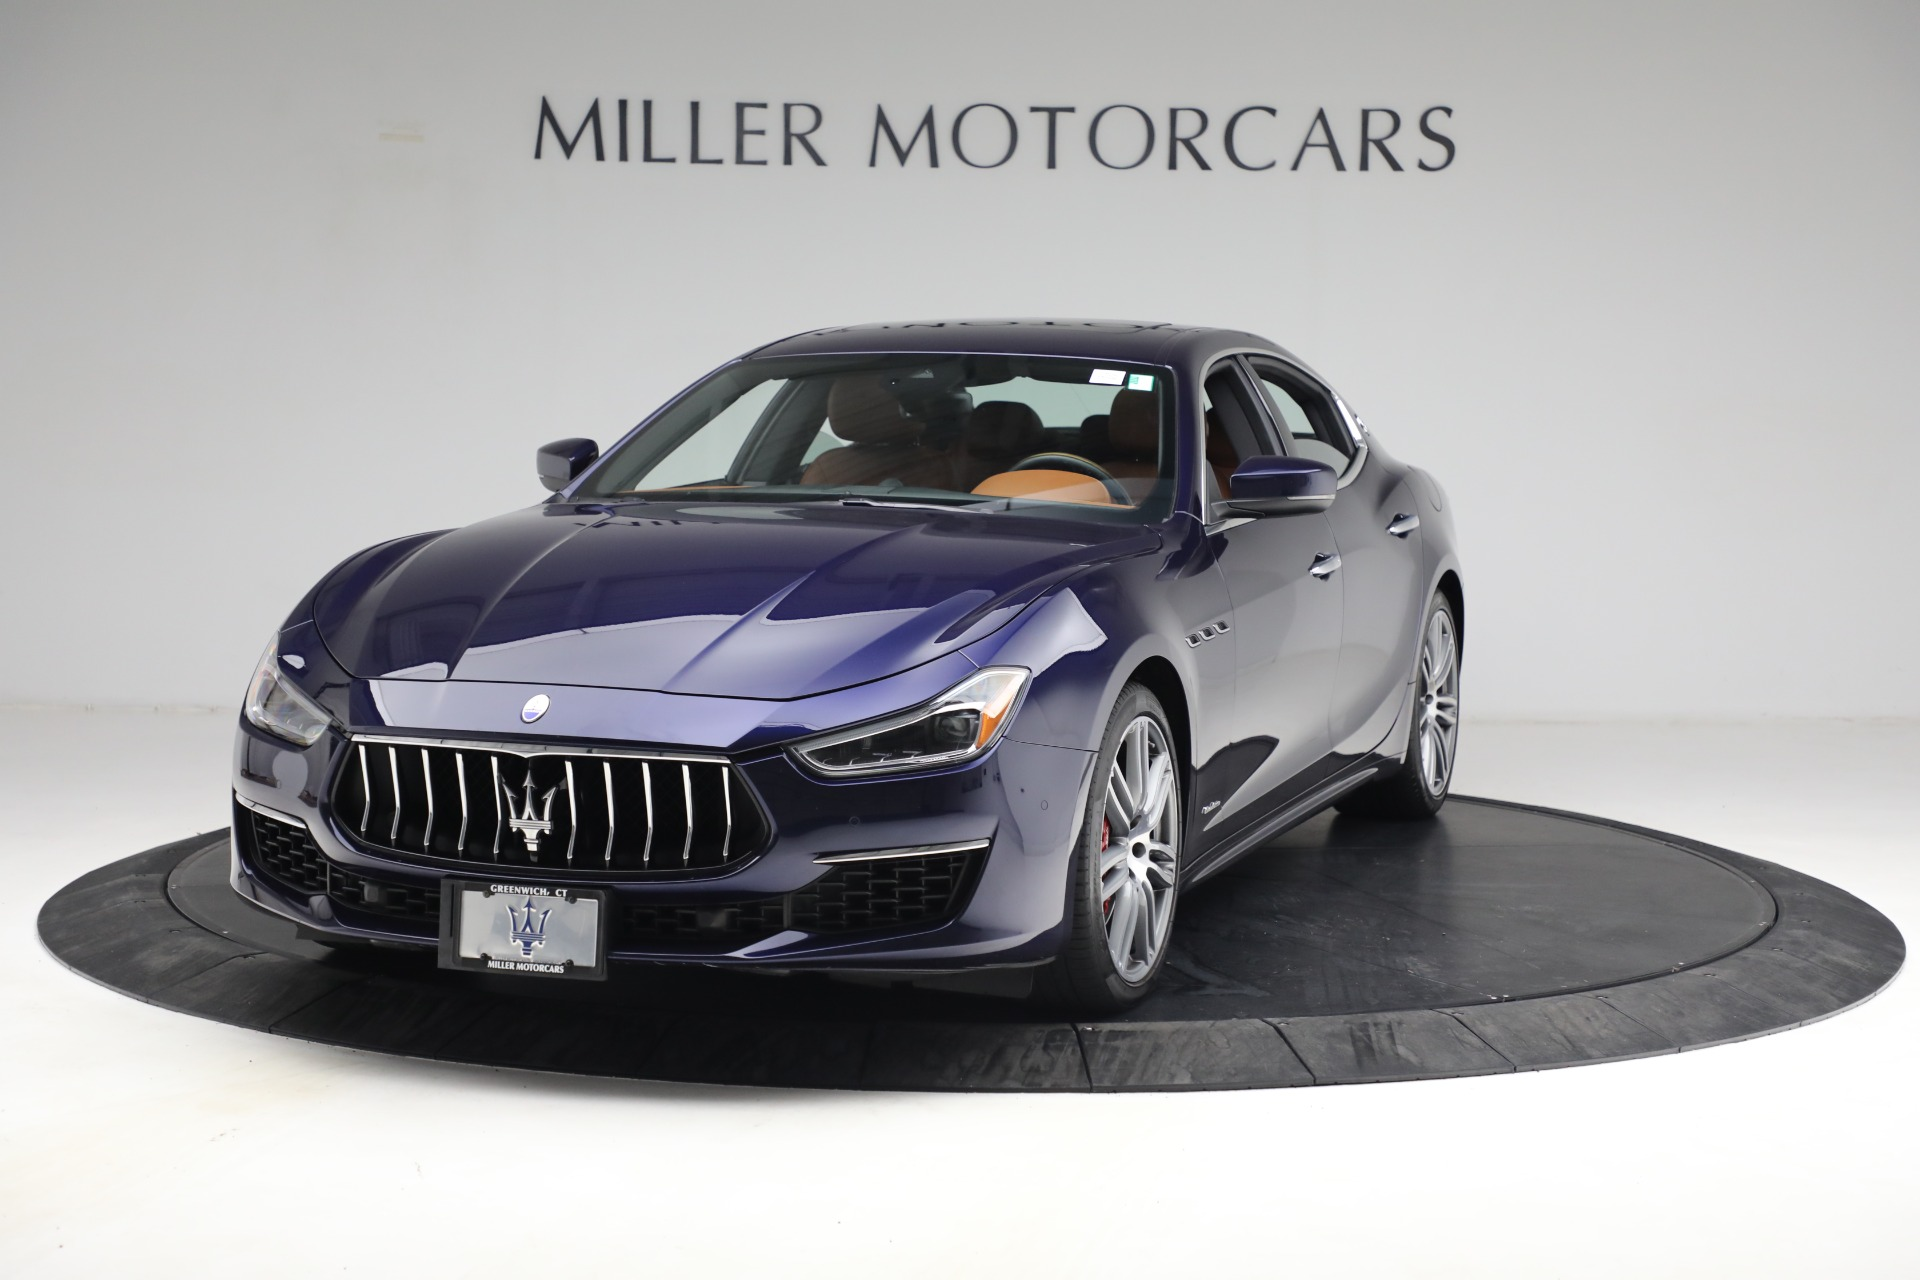 Used 2018 Maserati Ghibli S Q4 GranLusso for sale $56,900 at Rolls-Royce Motor Cars Greenwich in Greenwich CT 06830 1